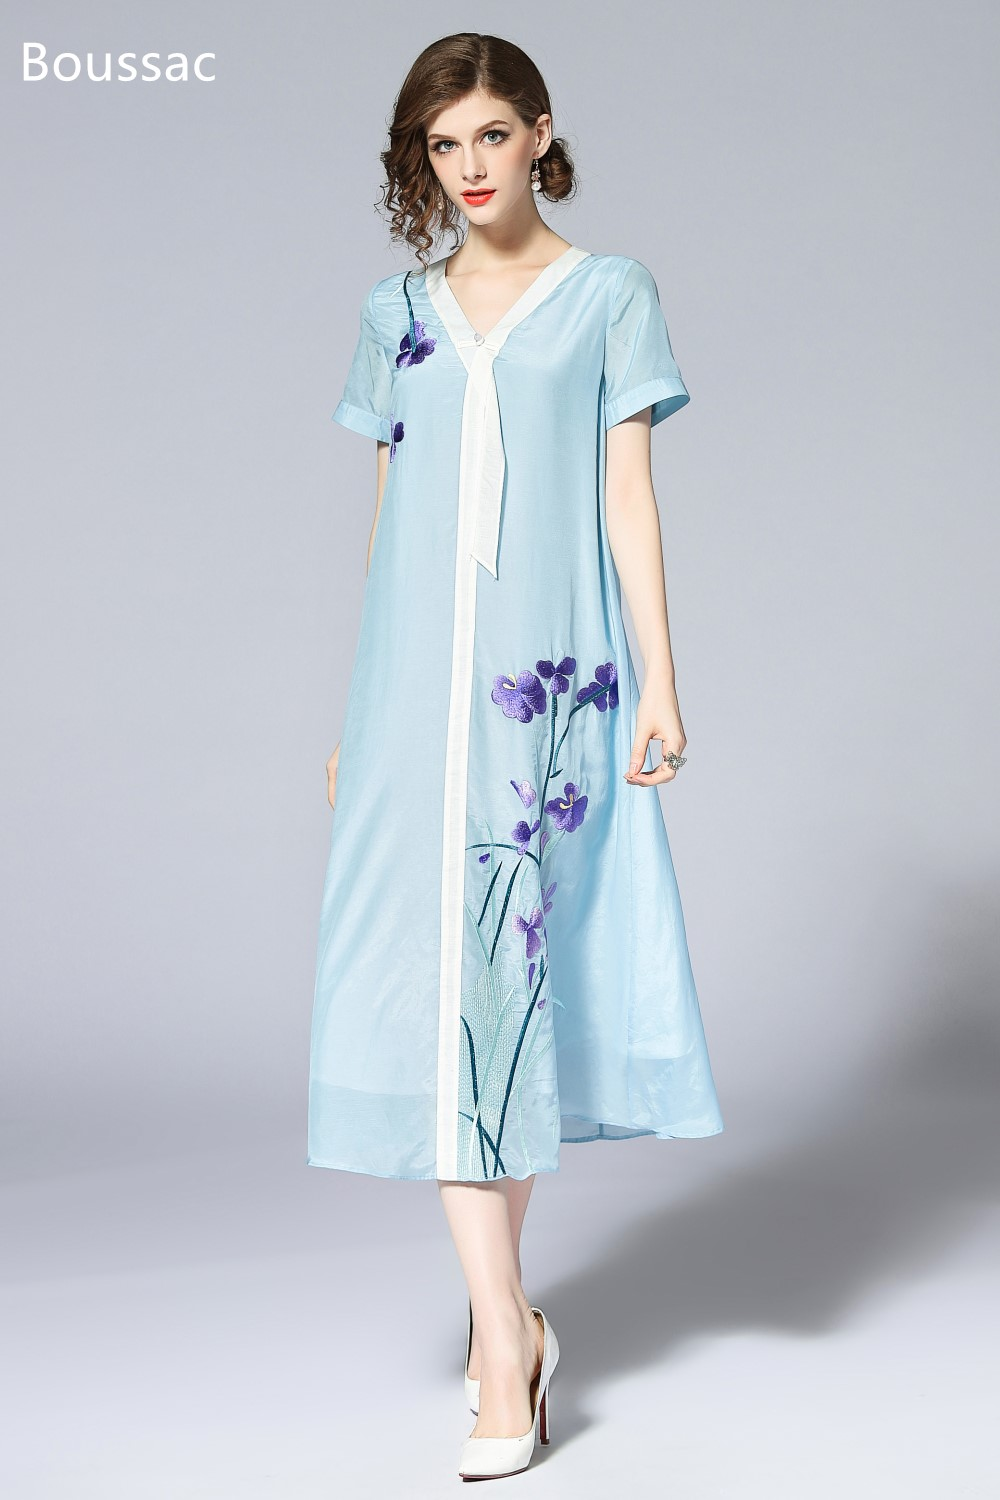 Free shipping Summer original design A Version Chinese style Hit color flower Embroidered big size dress for women